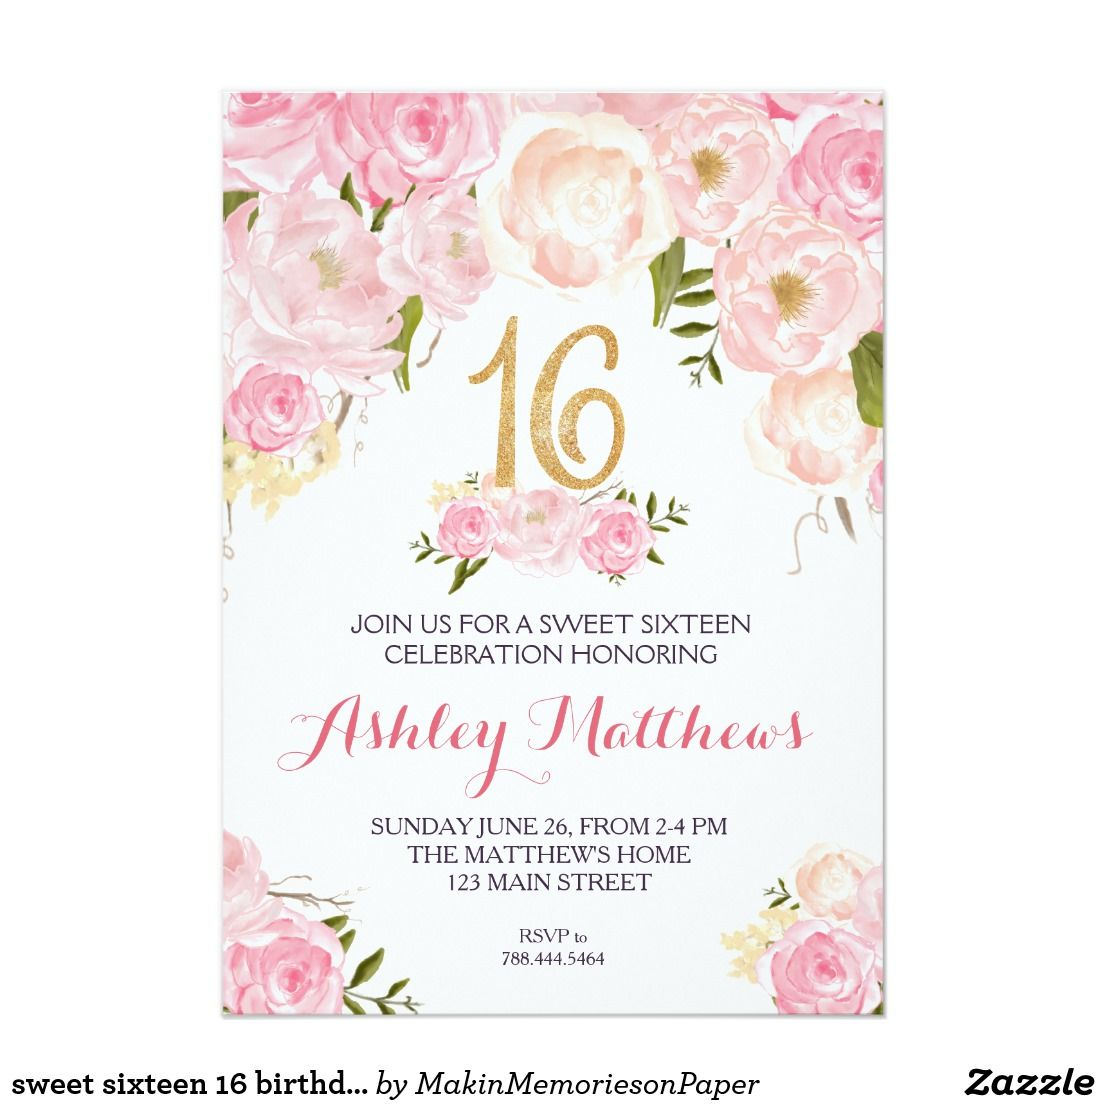 sweet sixteen 16 birthday floral invitation invitation in 2018